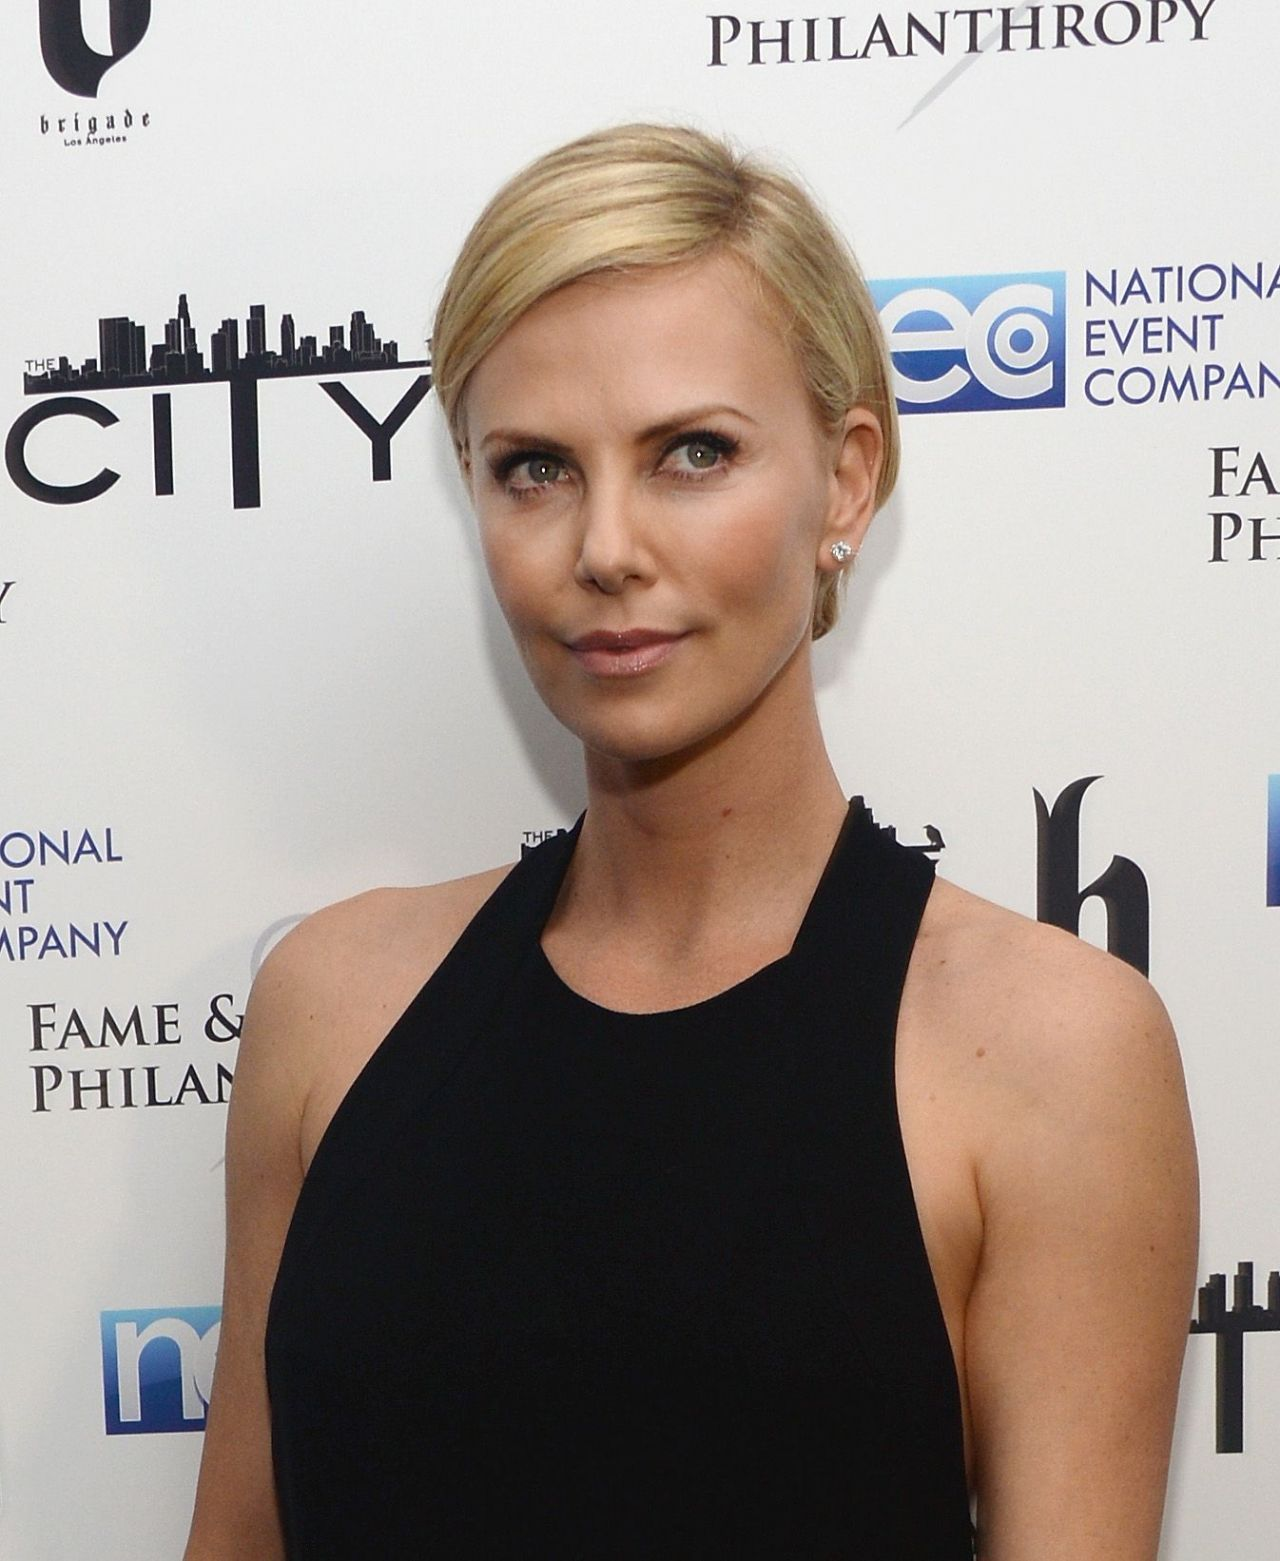 Charlize Theron - Fame and Philanthropy Post-Oscar Party